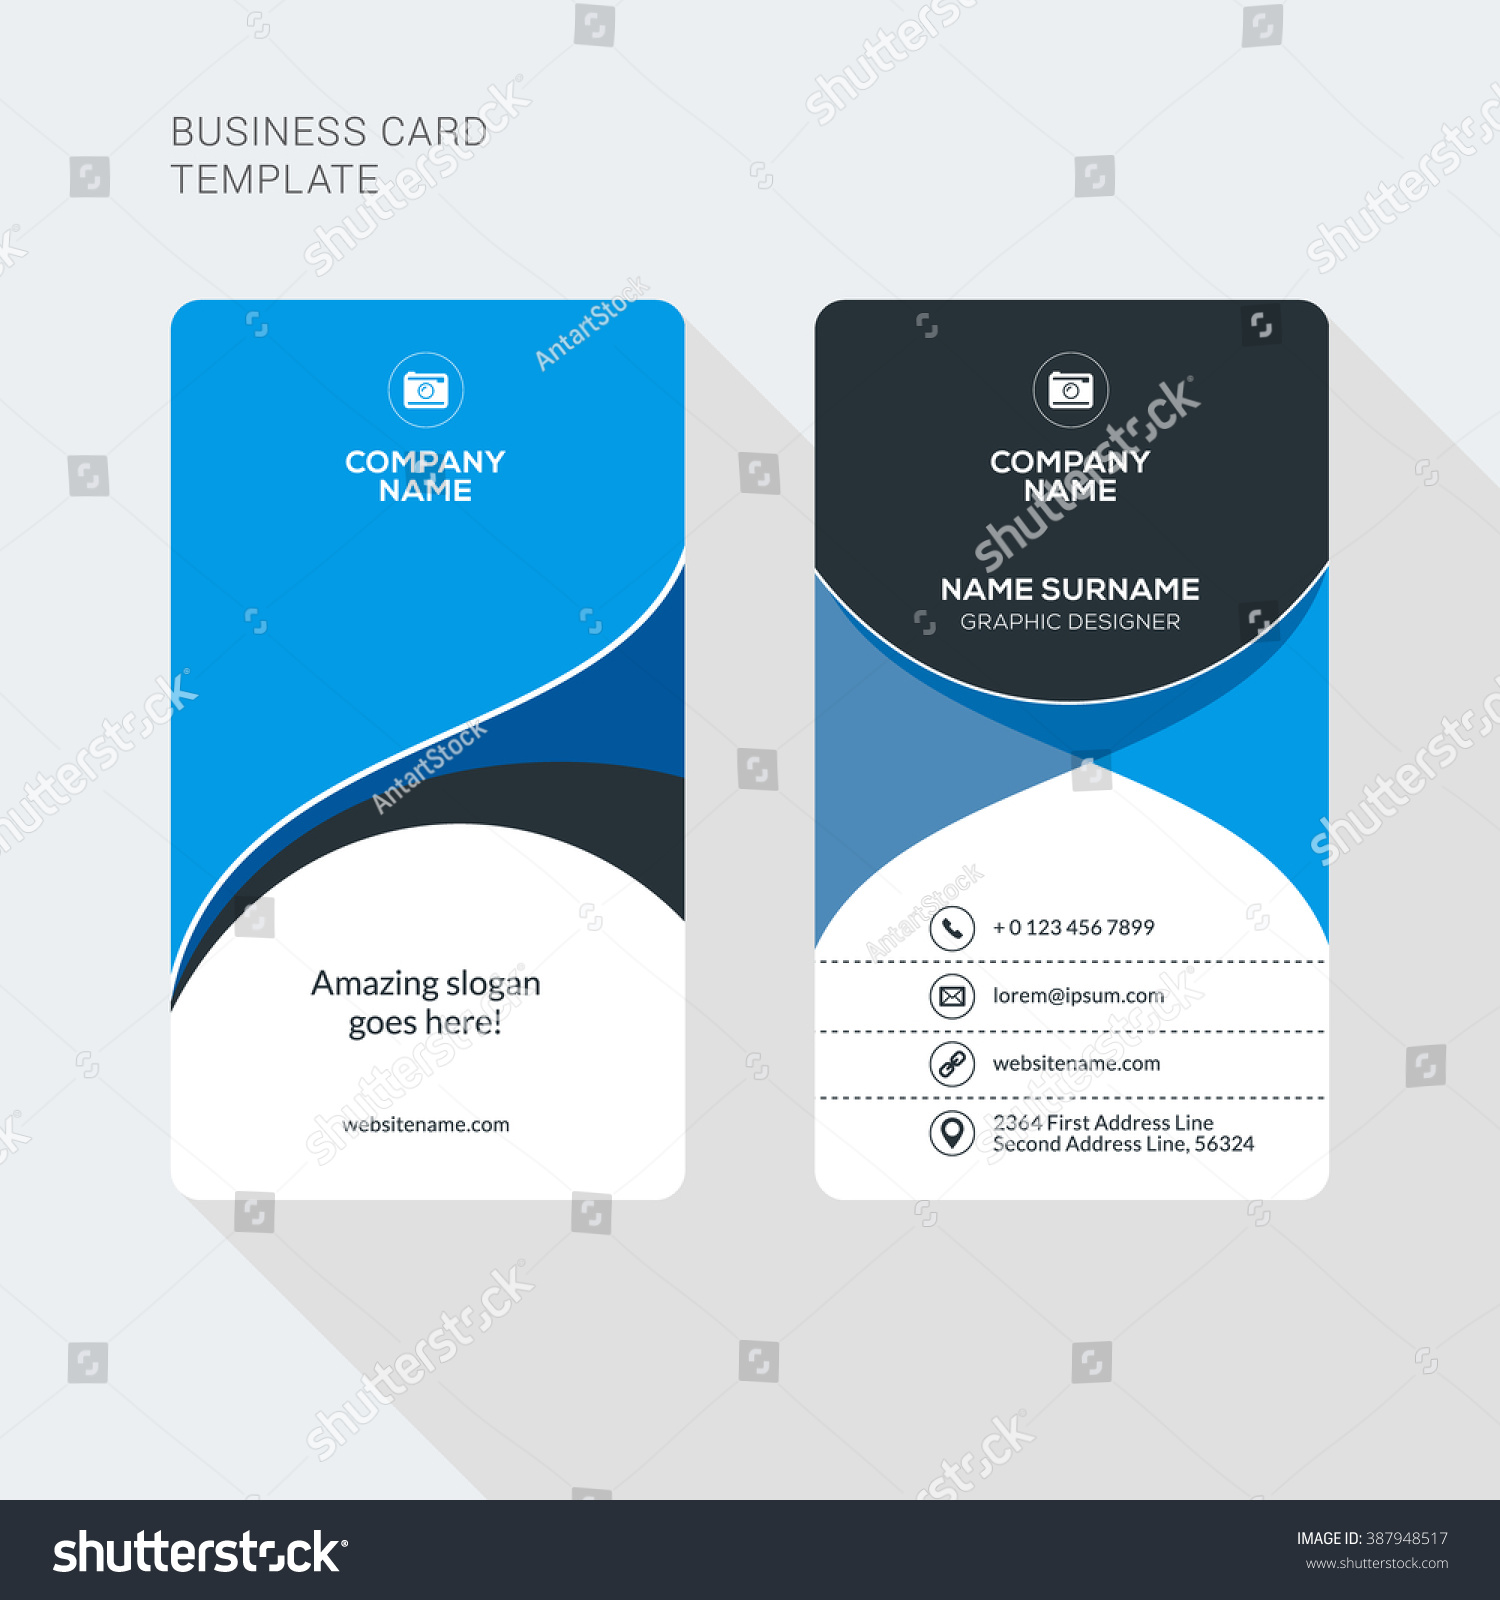 Free Word Business Card Template Downloads